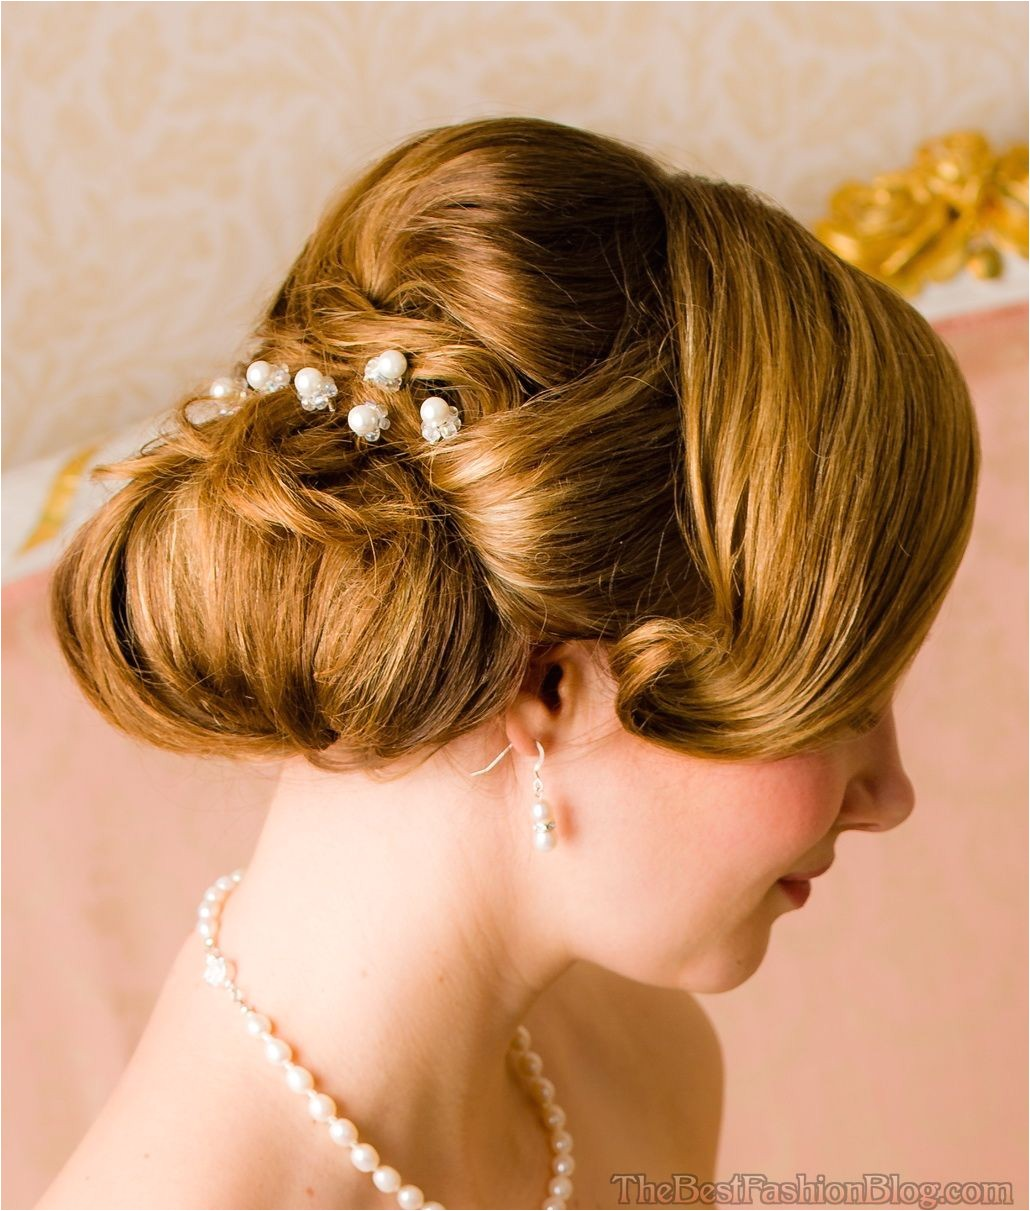 how much for wedding hair